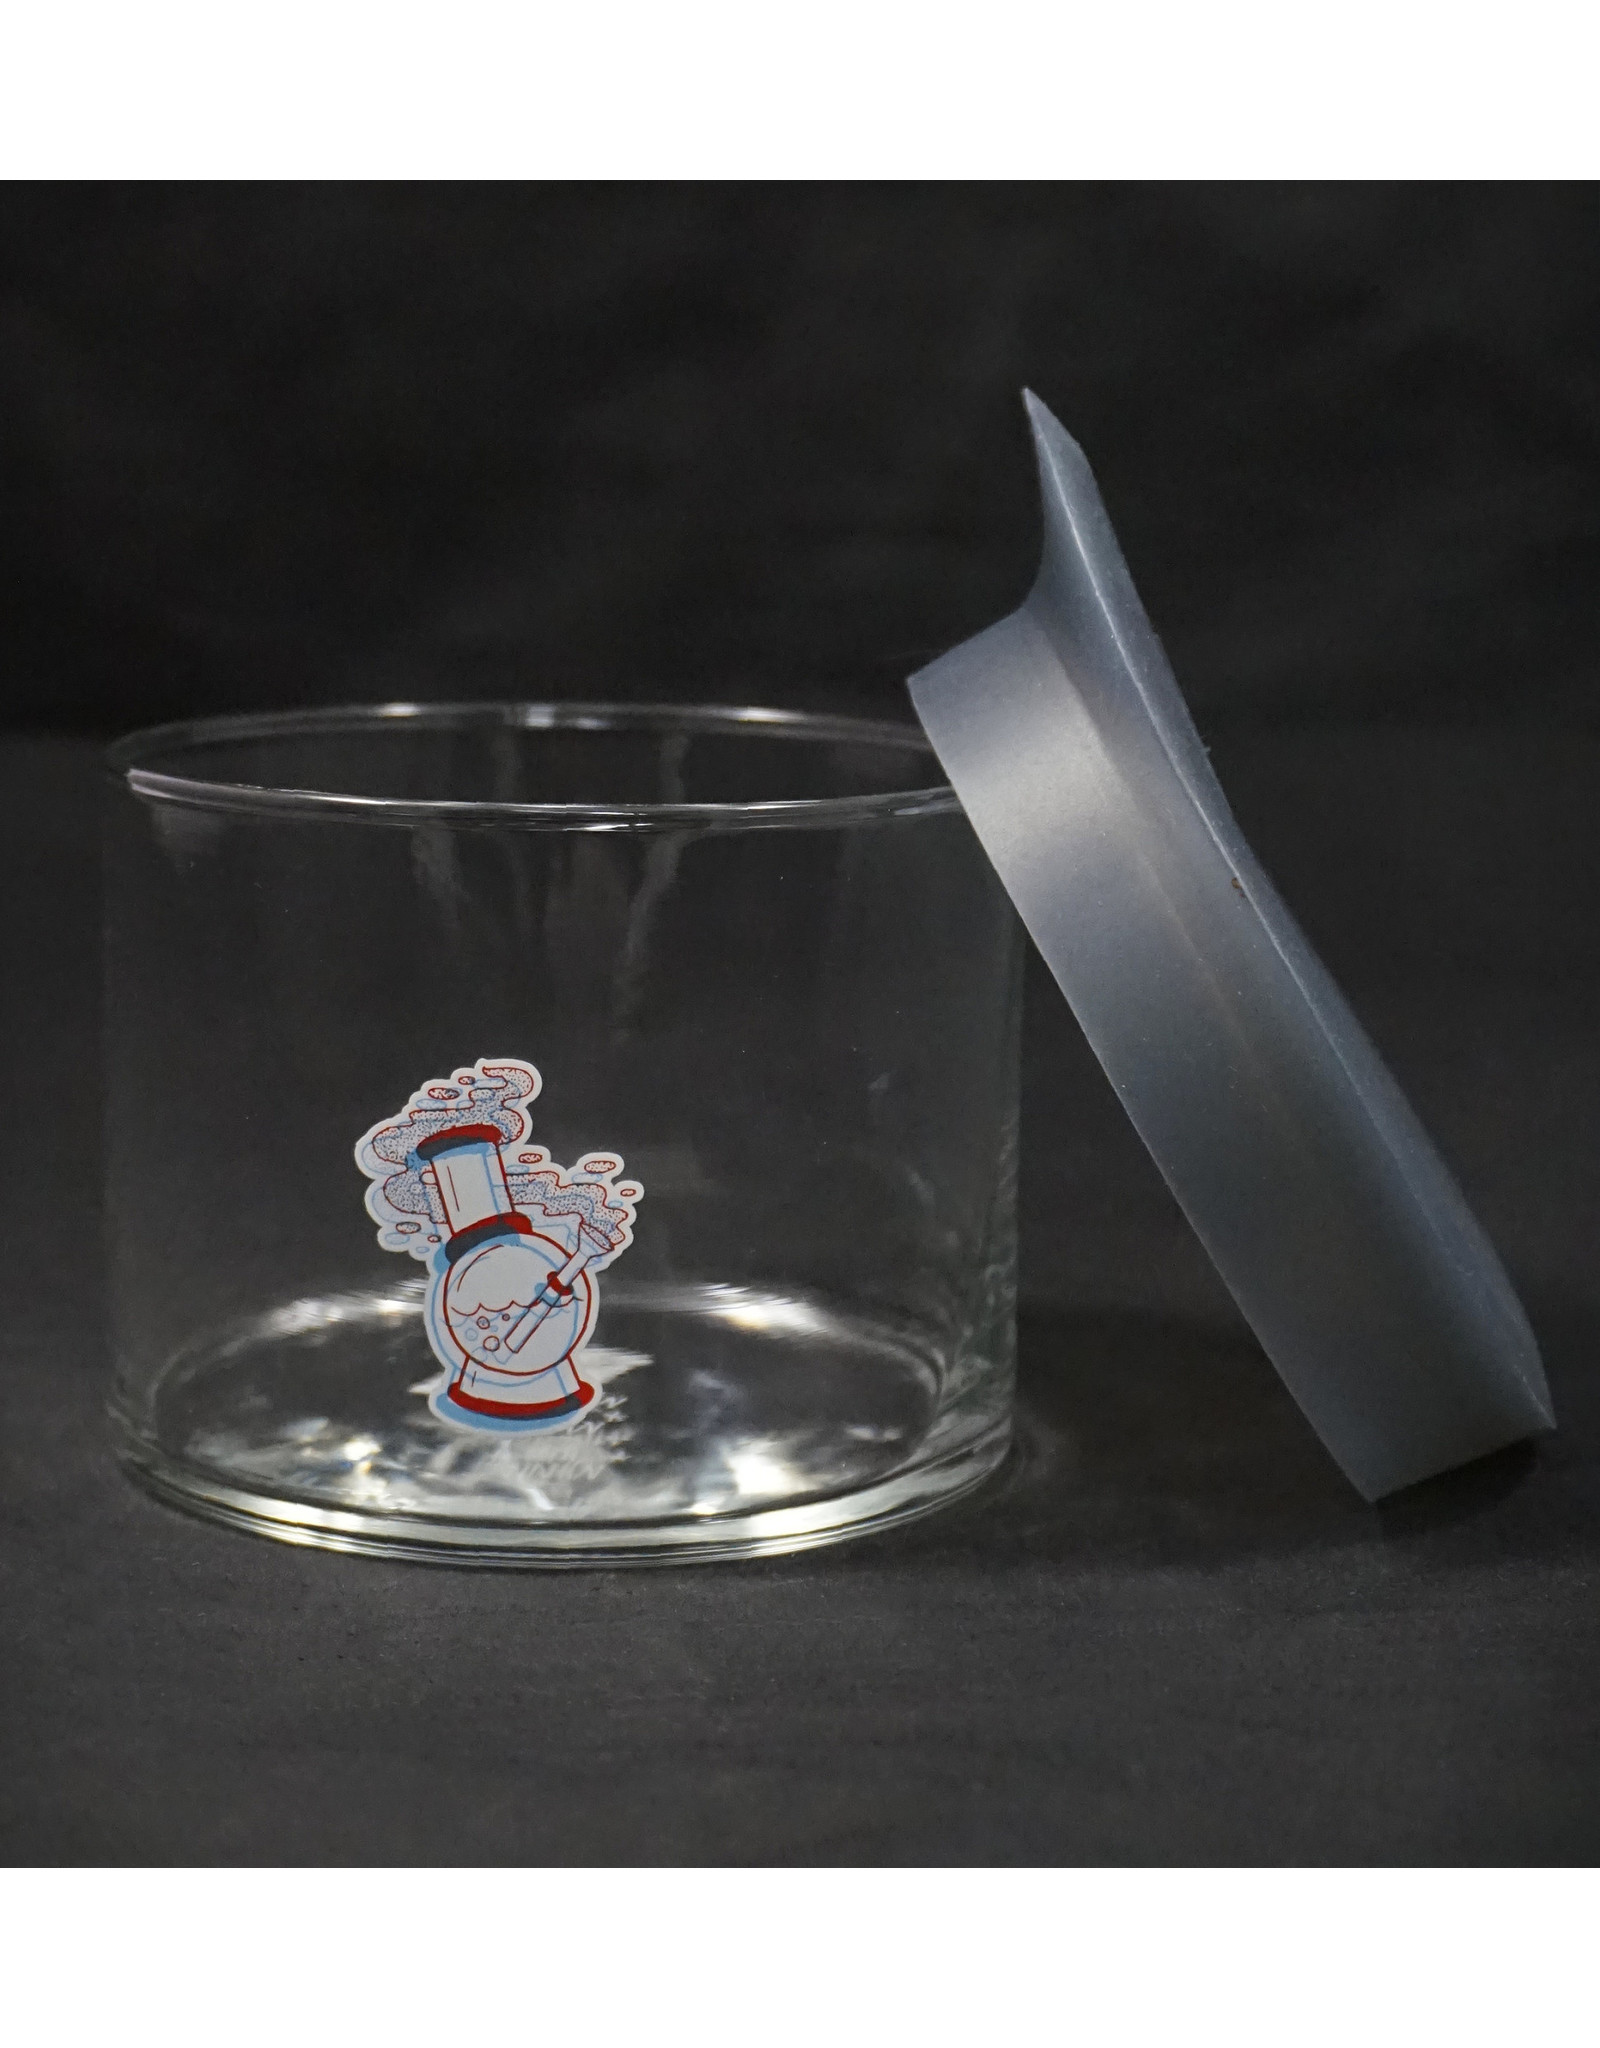 420 Science 420 Science Jars Small 3D Waterpipe Wide Mouth